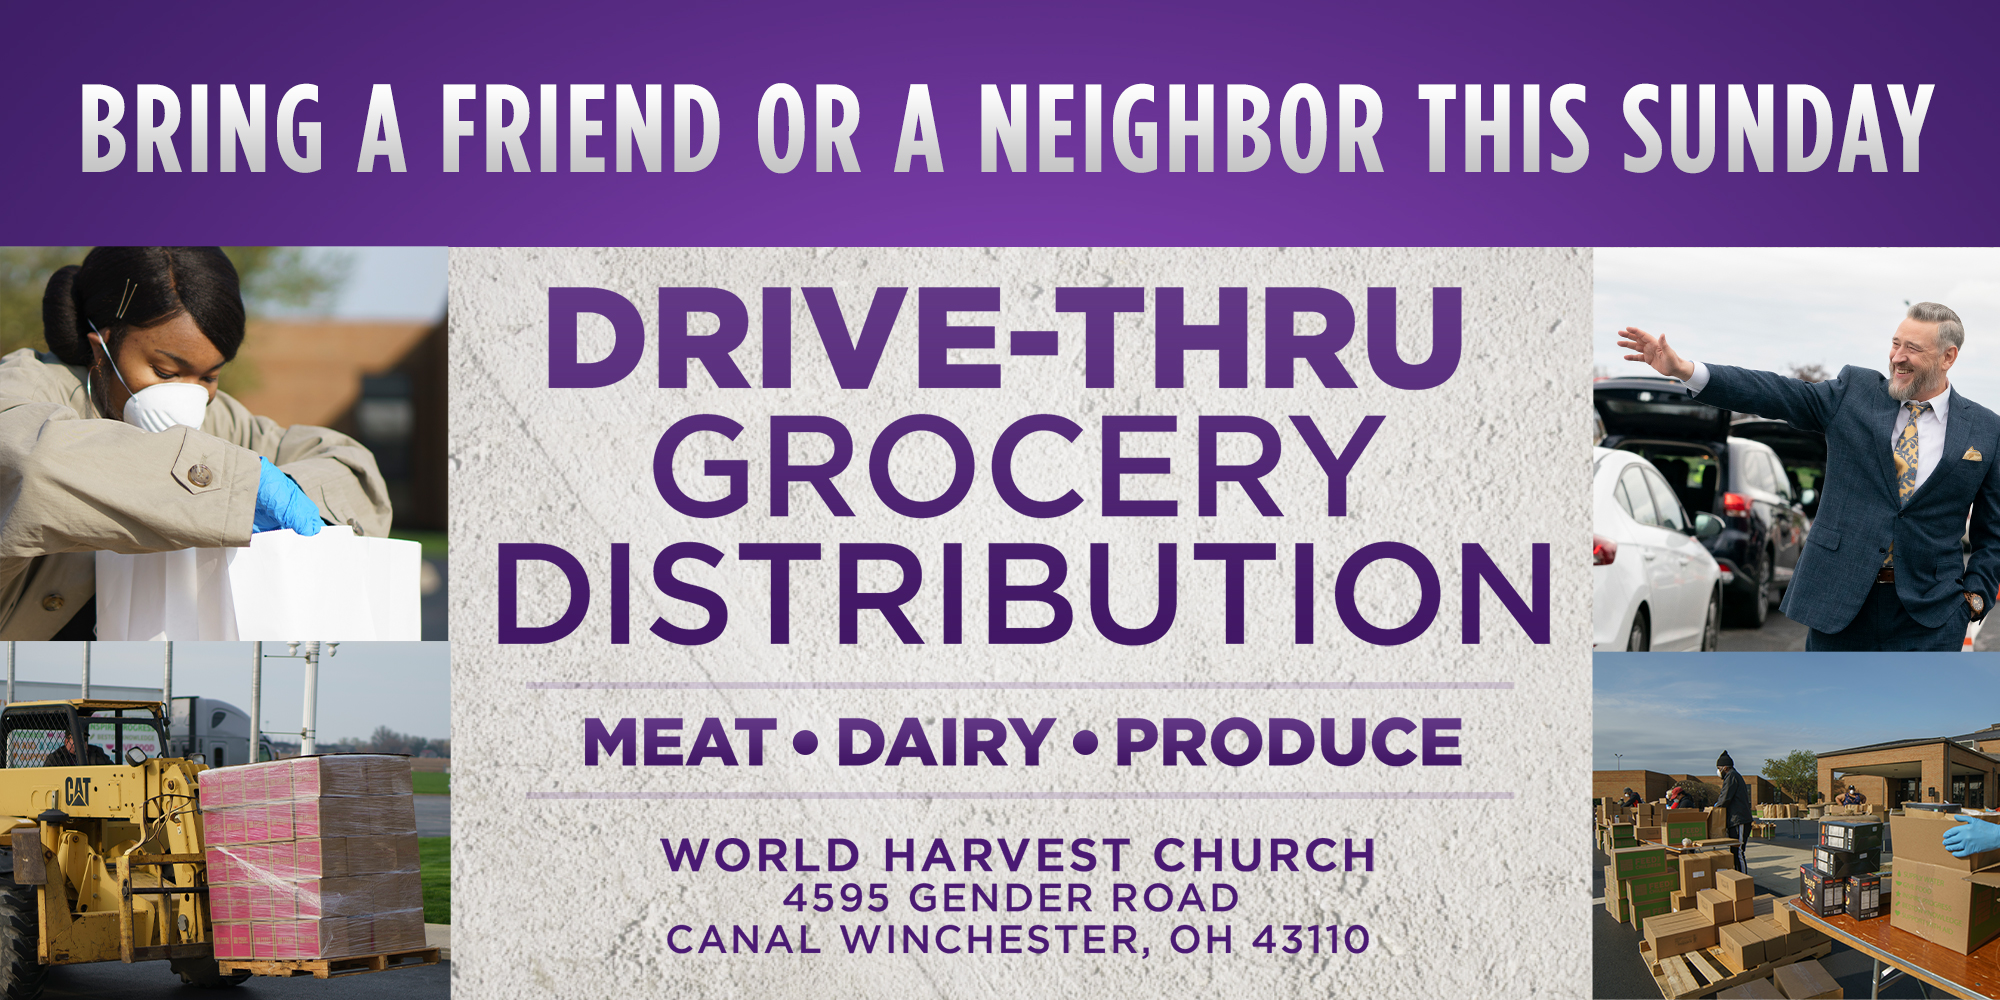 Bring a friend or a neighbor this sunday Drive-Thru Grocery Distribution Meat, Dairy, Produce. World Harvest Church